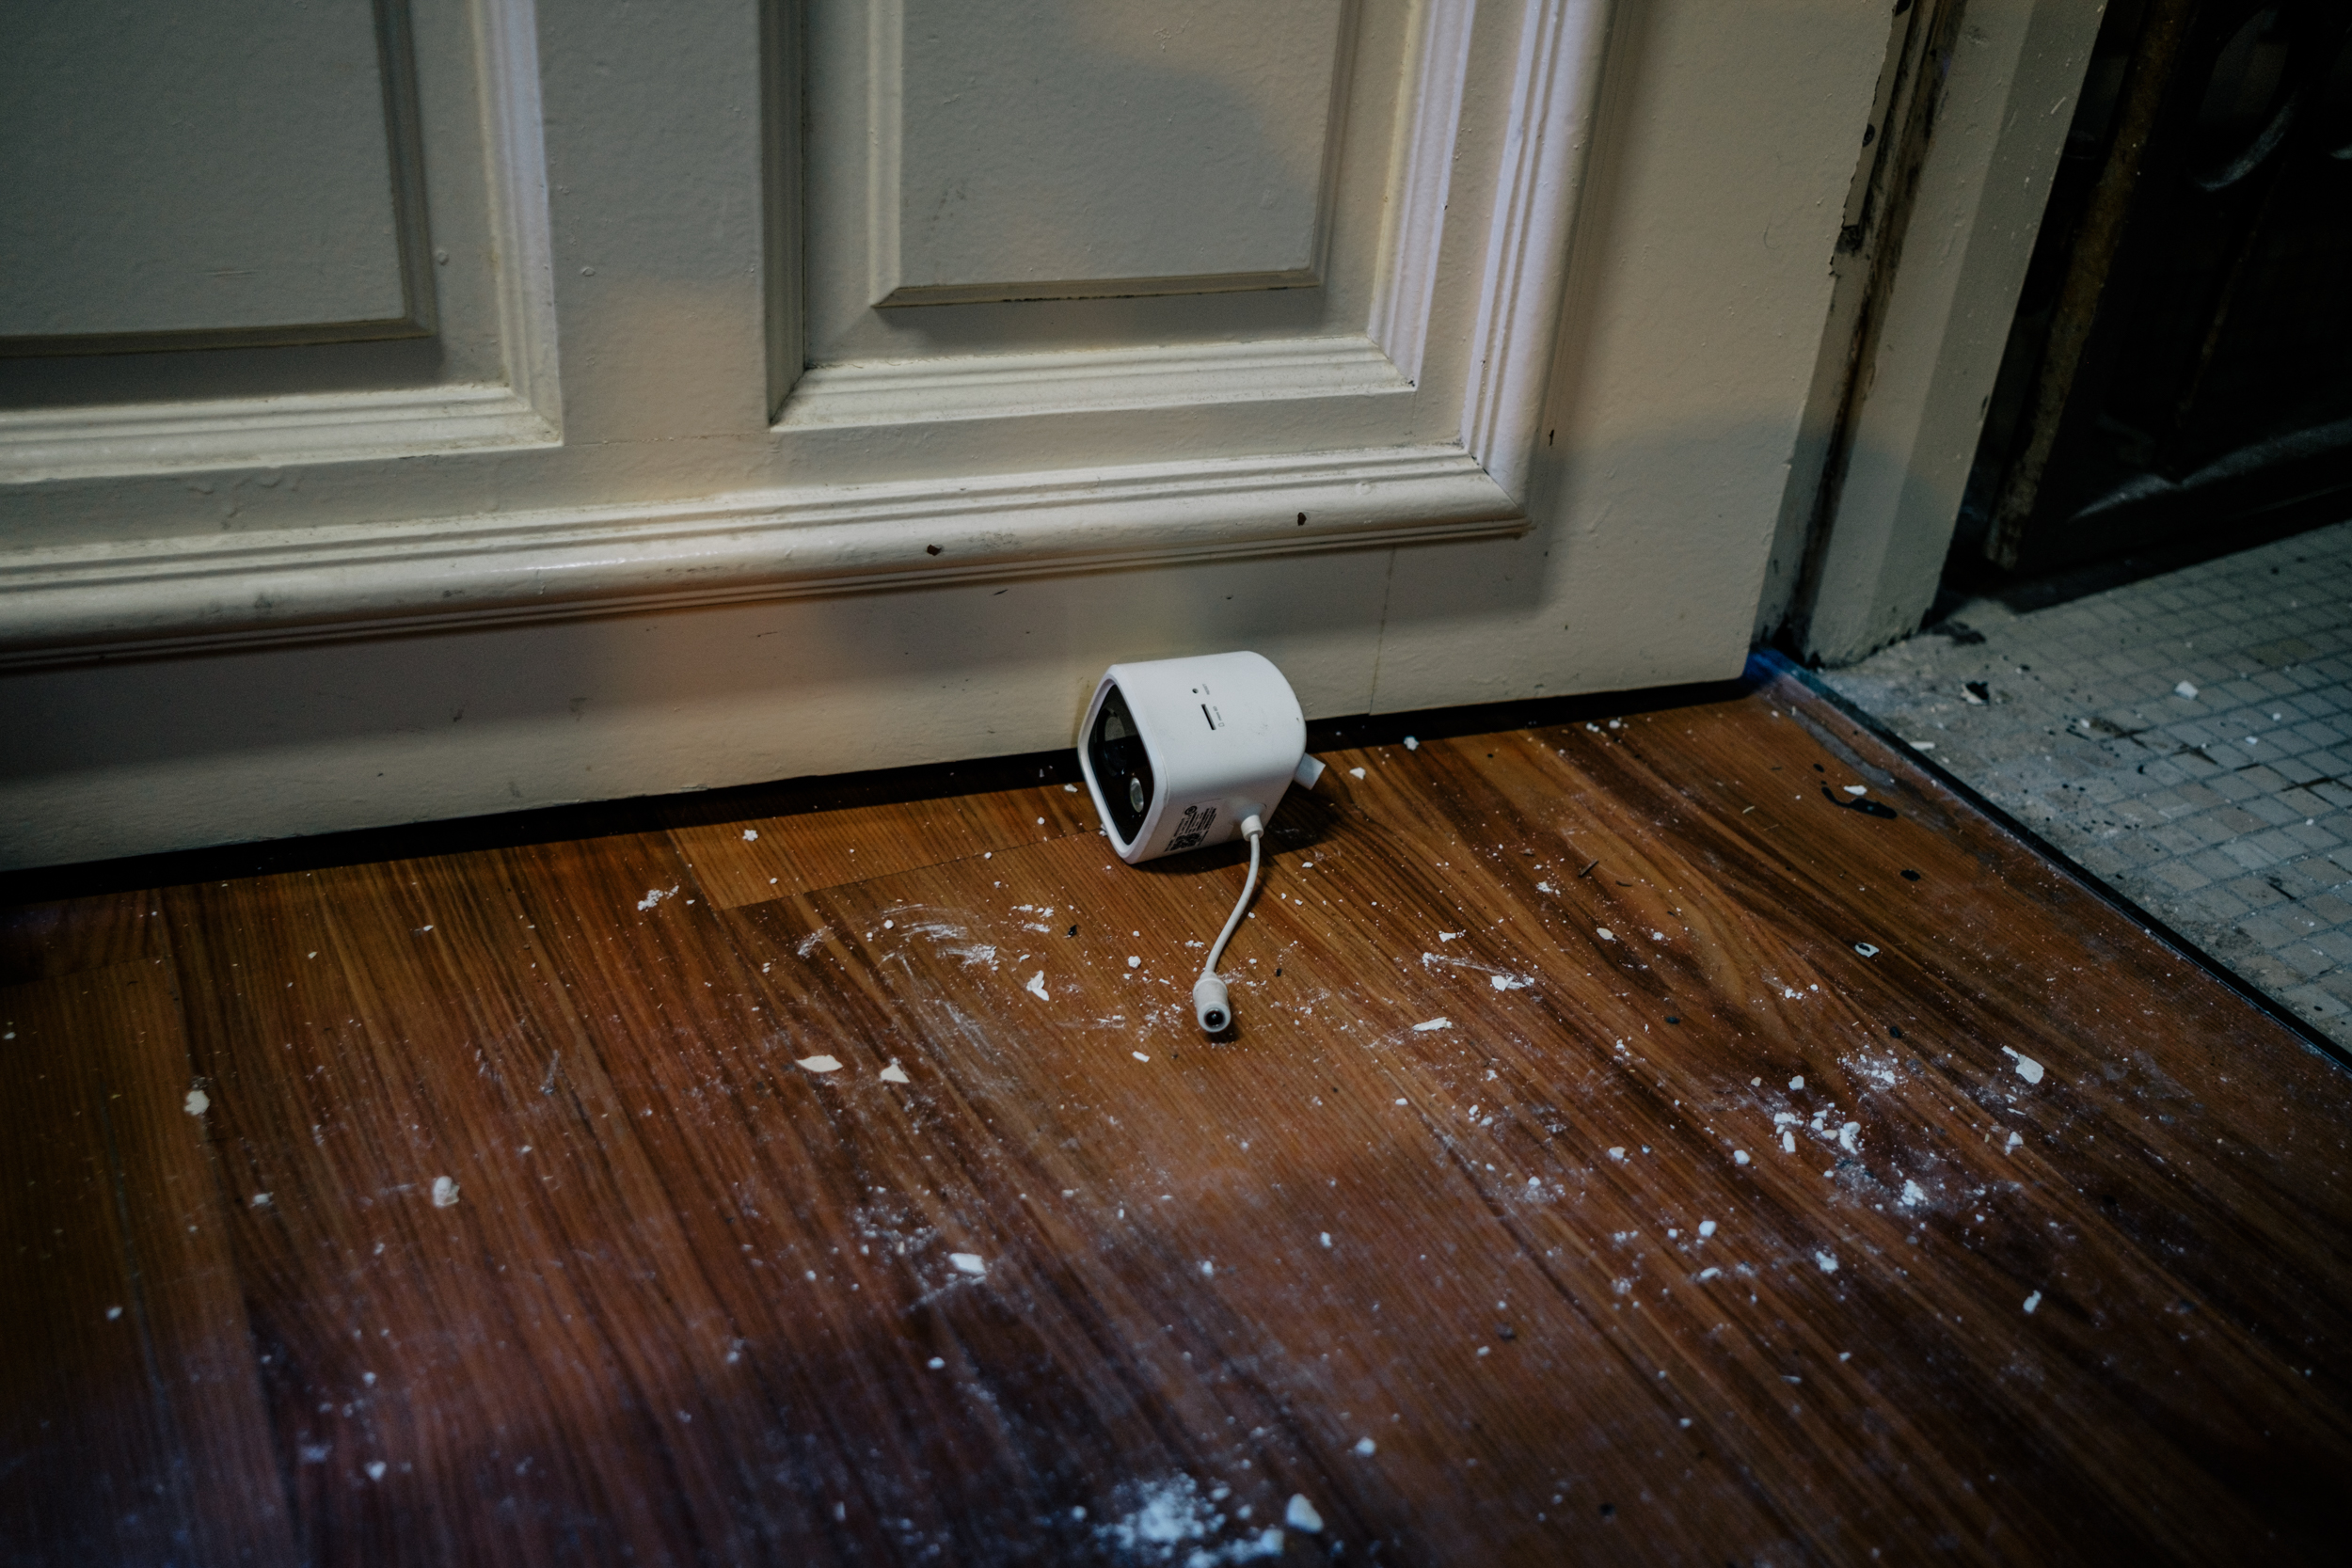 Image of the CCTV lying by the foot of the door.